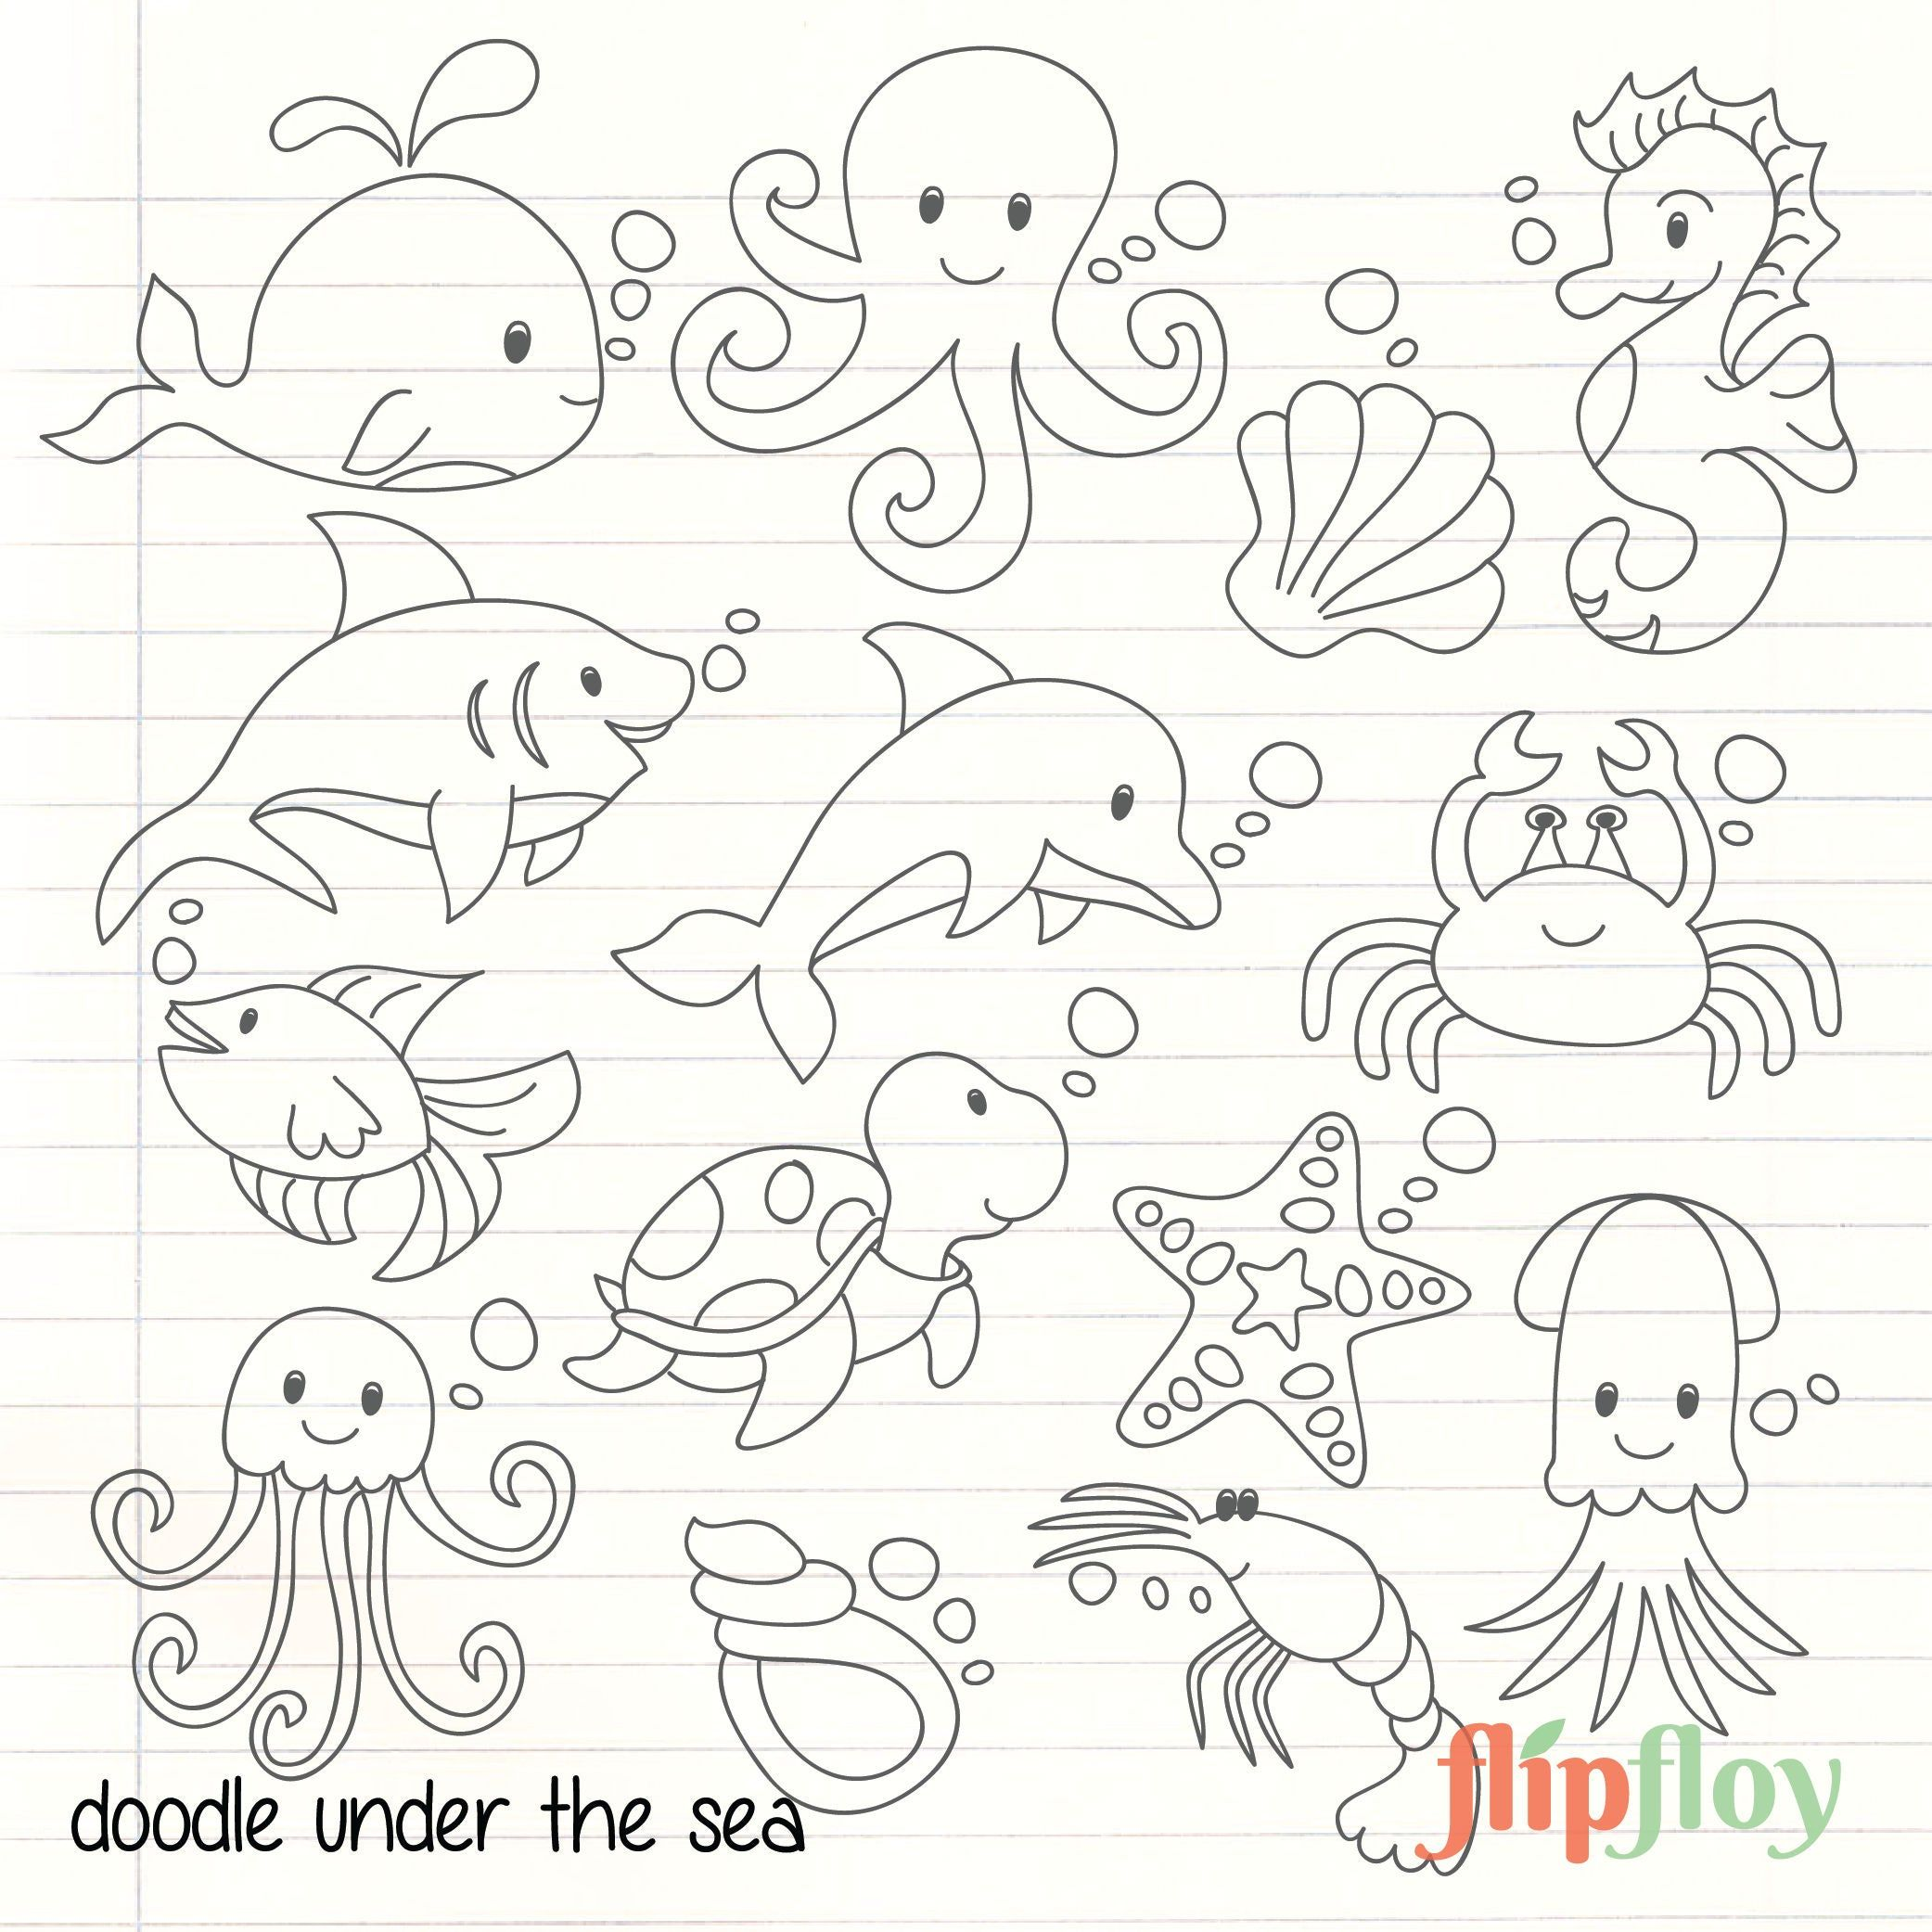 Doodle Cute Under The Sea Animal Instant Download 14 Etsy Sea Animals Drawings Animal Doodles Sea Creatures Drawing